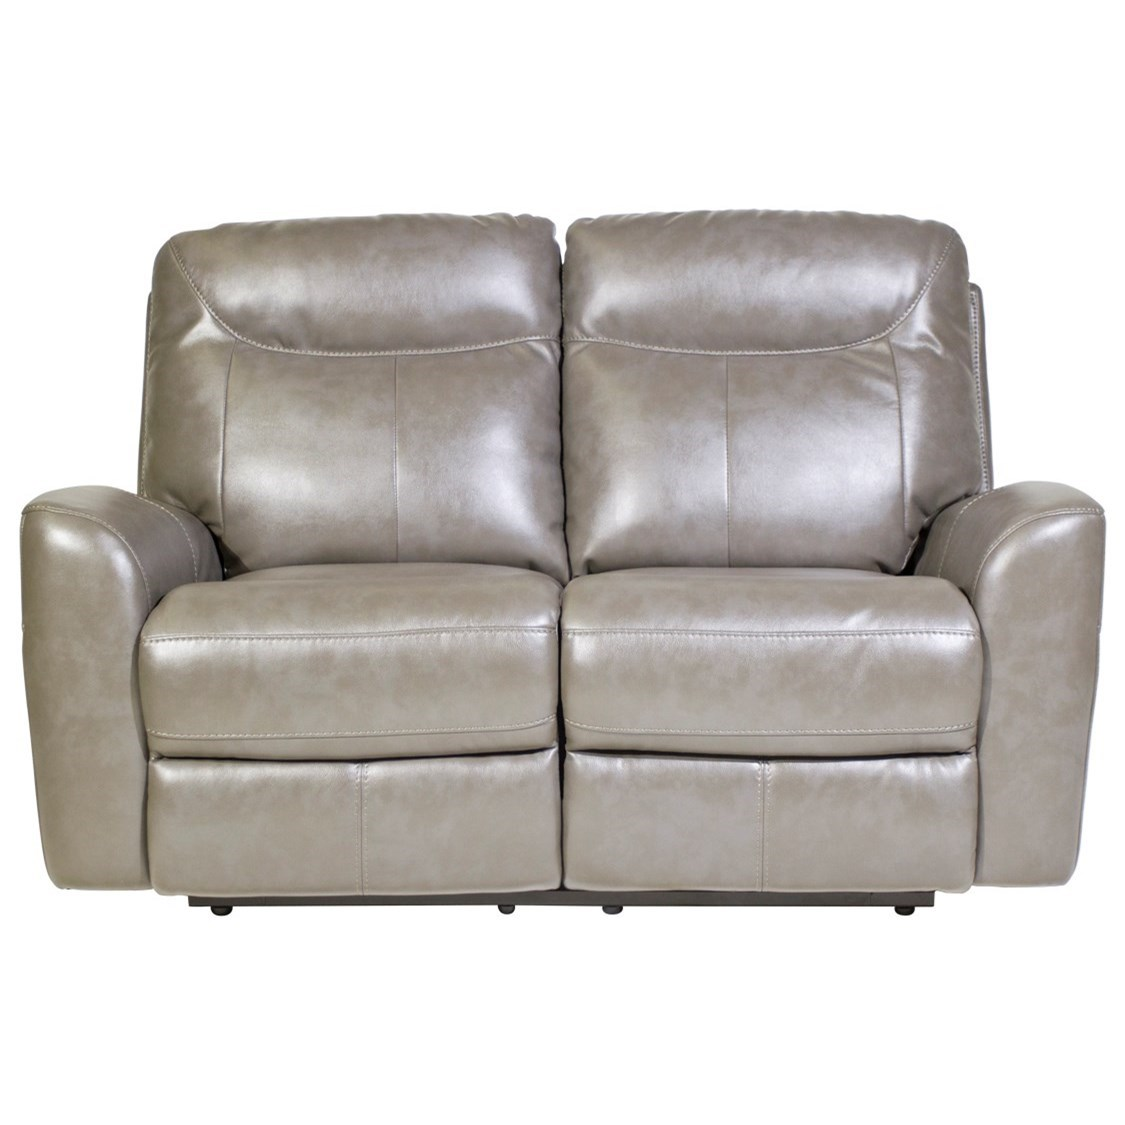 Violino Broadway Reclining Loveseat - Item Number: 30914EM-FK-2P